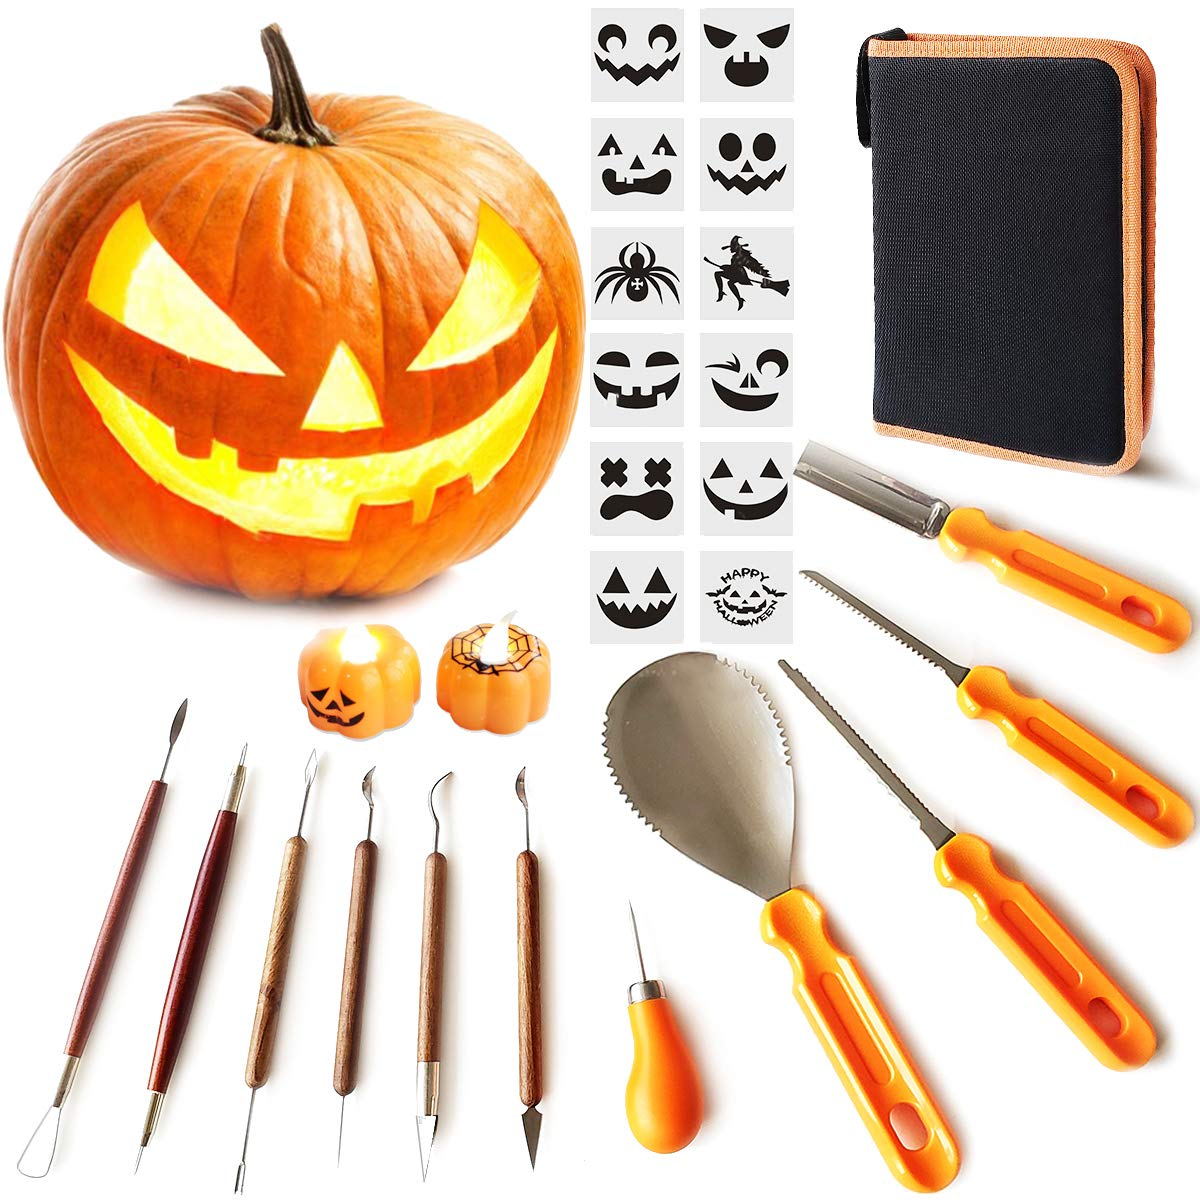 Pumpkin Carving Tools Kit, 11 Pieces Halloween Pumpkin Carving Tools Set,2 LED Pumpkin Candles,12 Carving Stencils with Carrying Case Halloween Decorations by DUBBUL